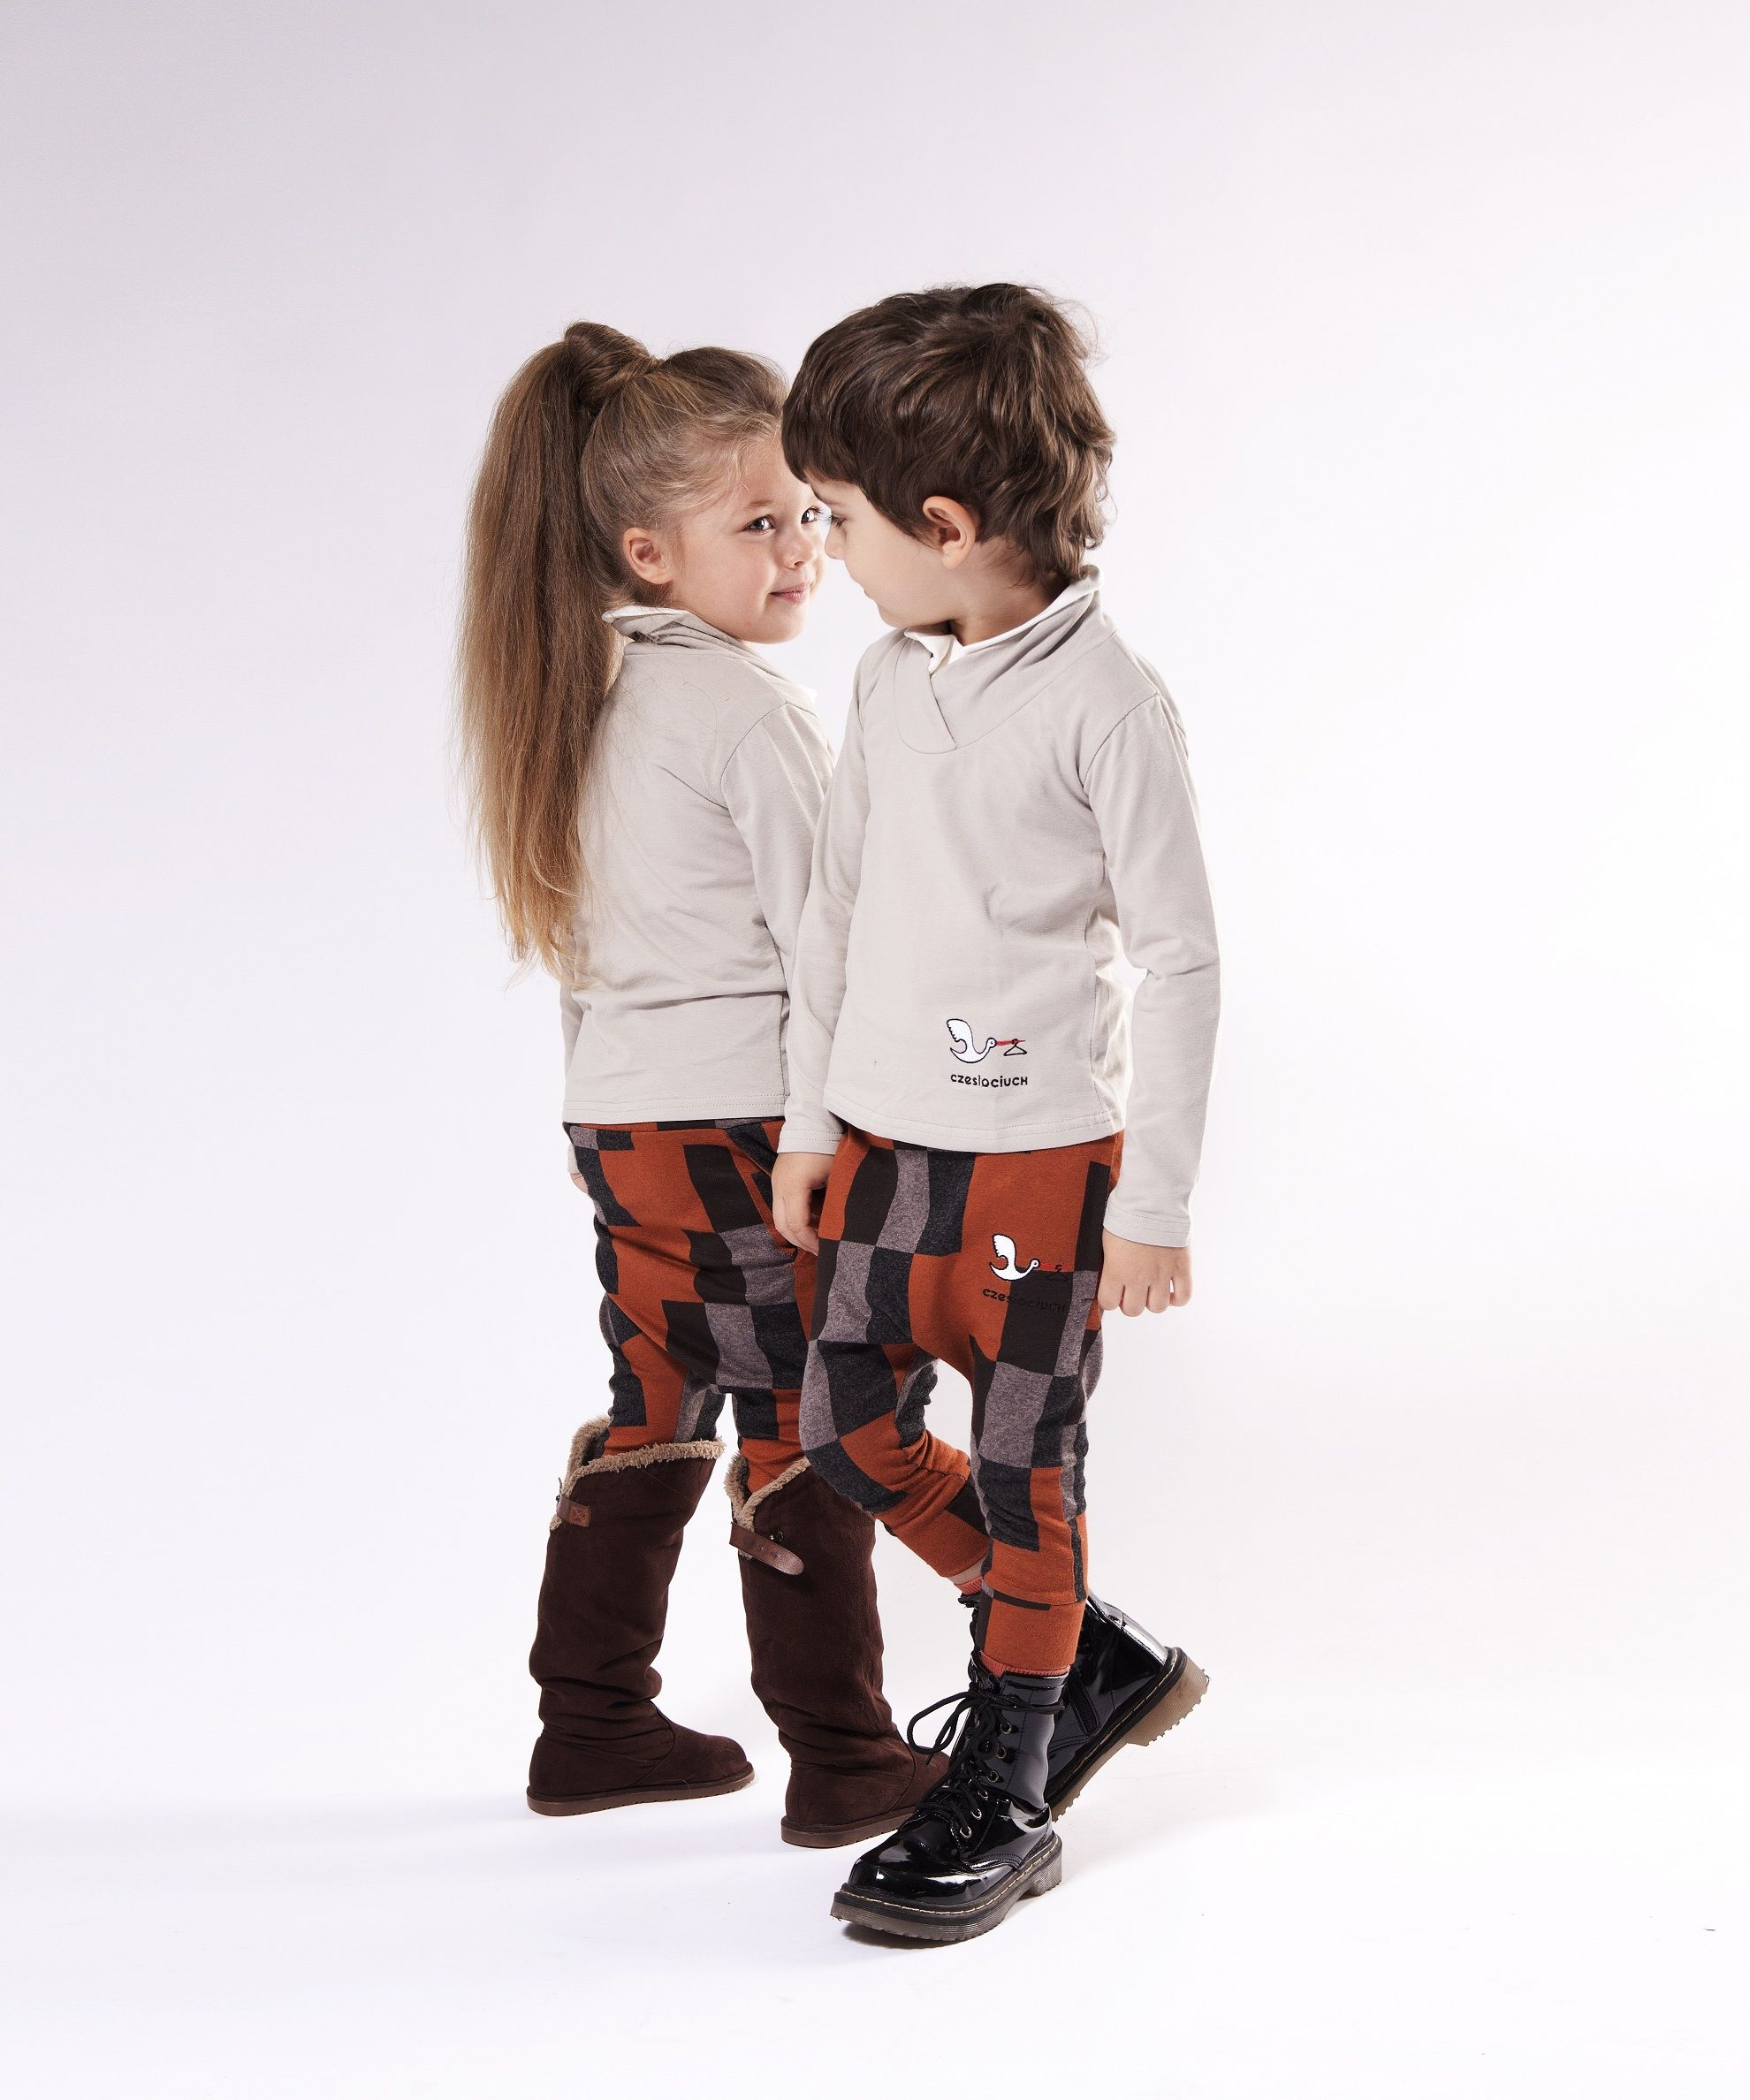 44beb1e10ed4 Czesiociuch - Refuse to Be Labeled – Exciting Unisex Kids  Clothing ...